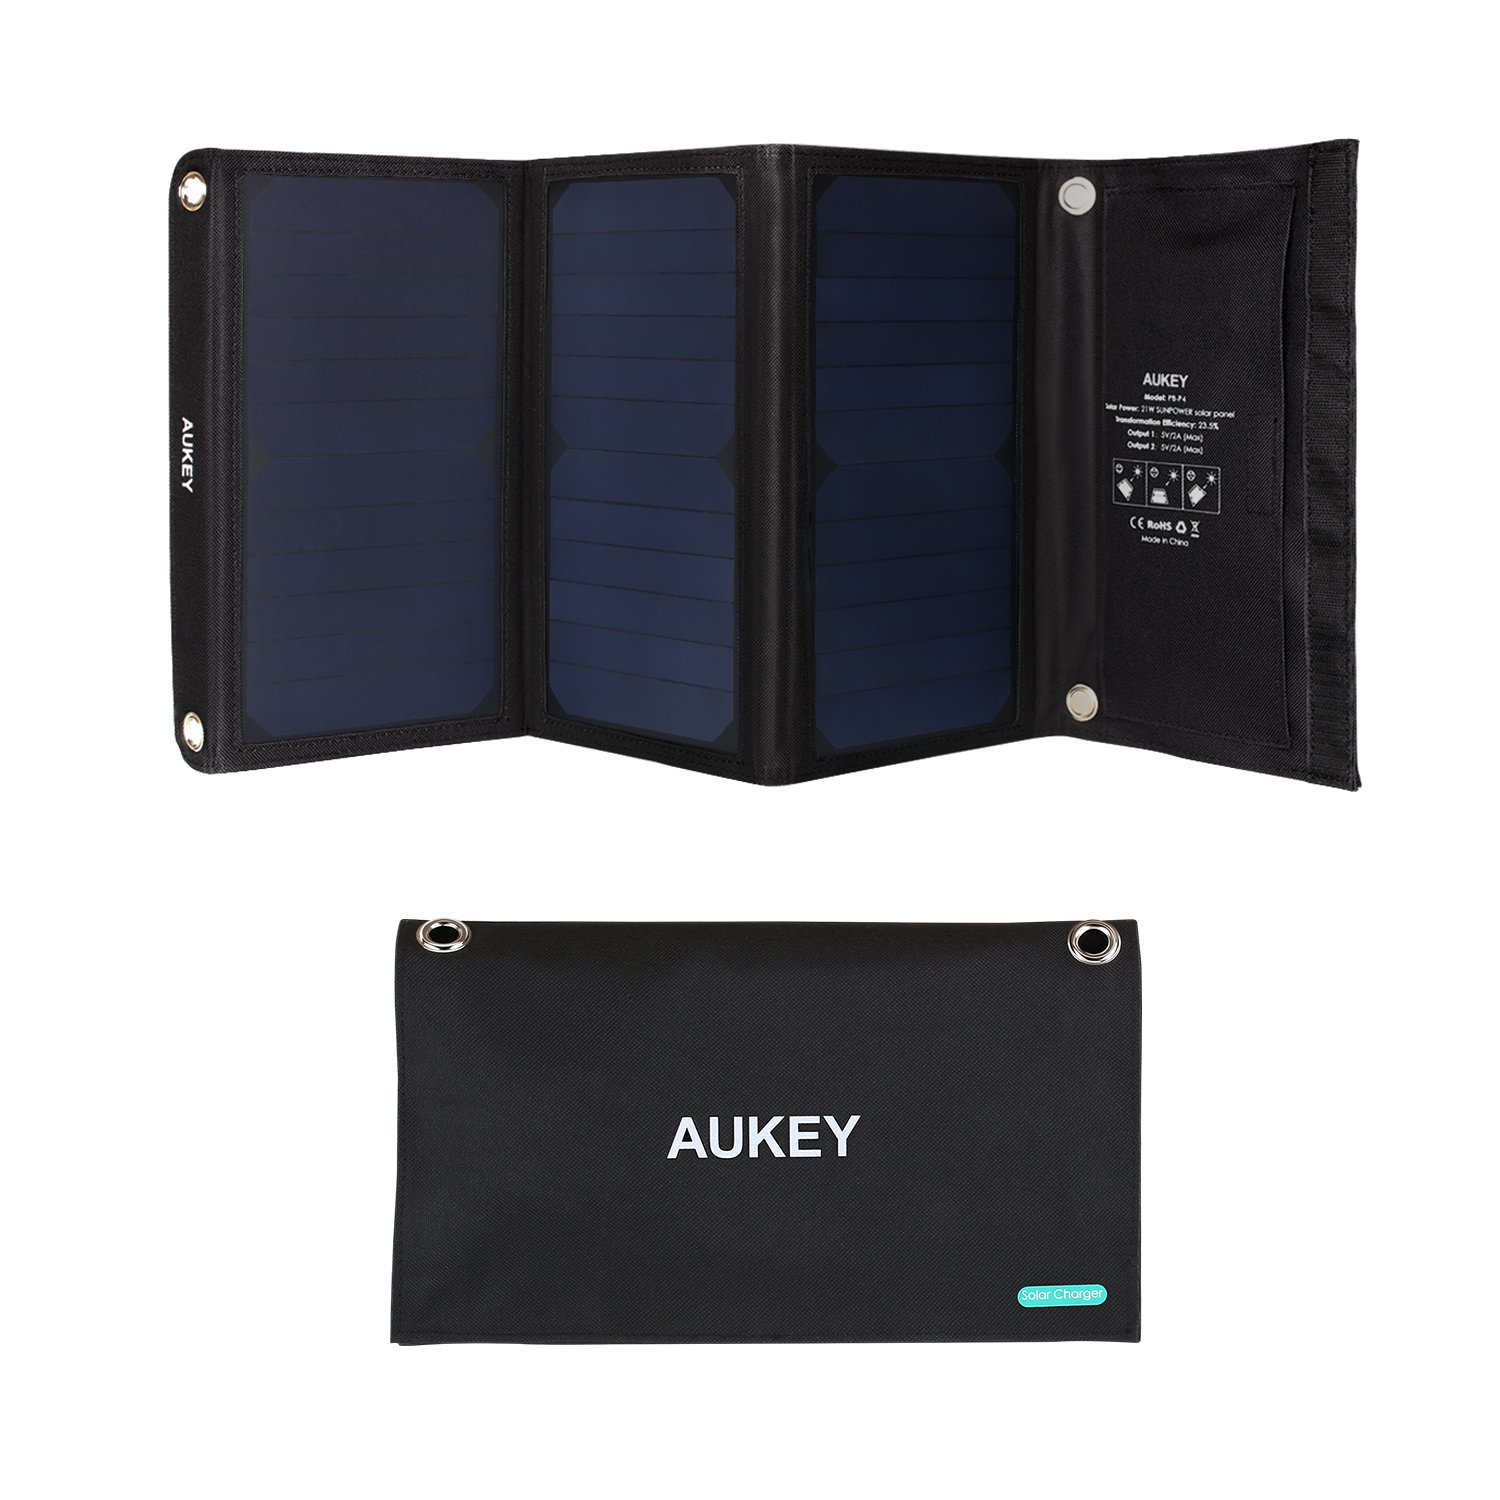 AUKEY 21W Solar Charger with SunPower Solar Panels, Stand, 2 USB Ports for Smartphones by AUKEY